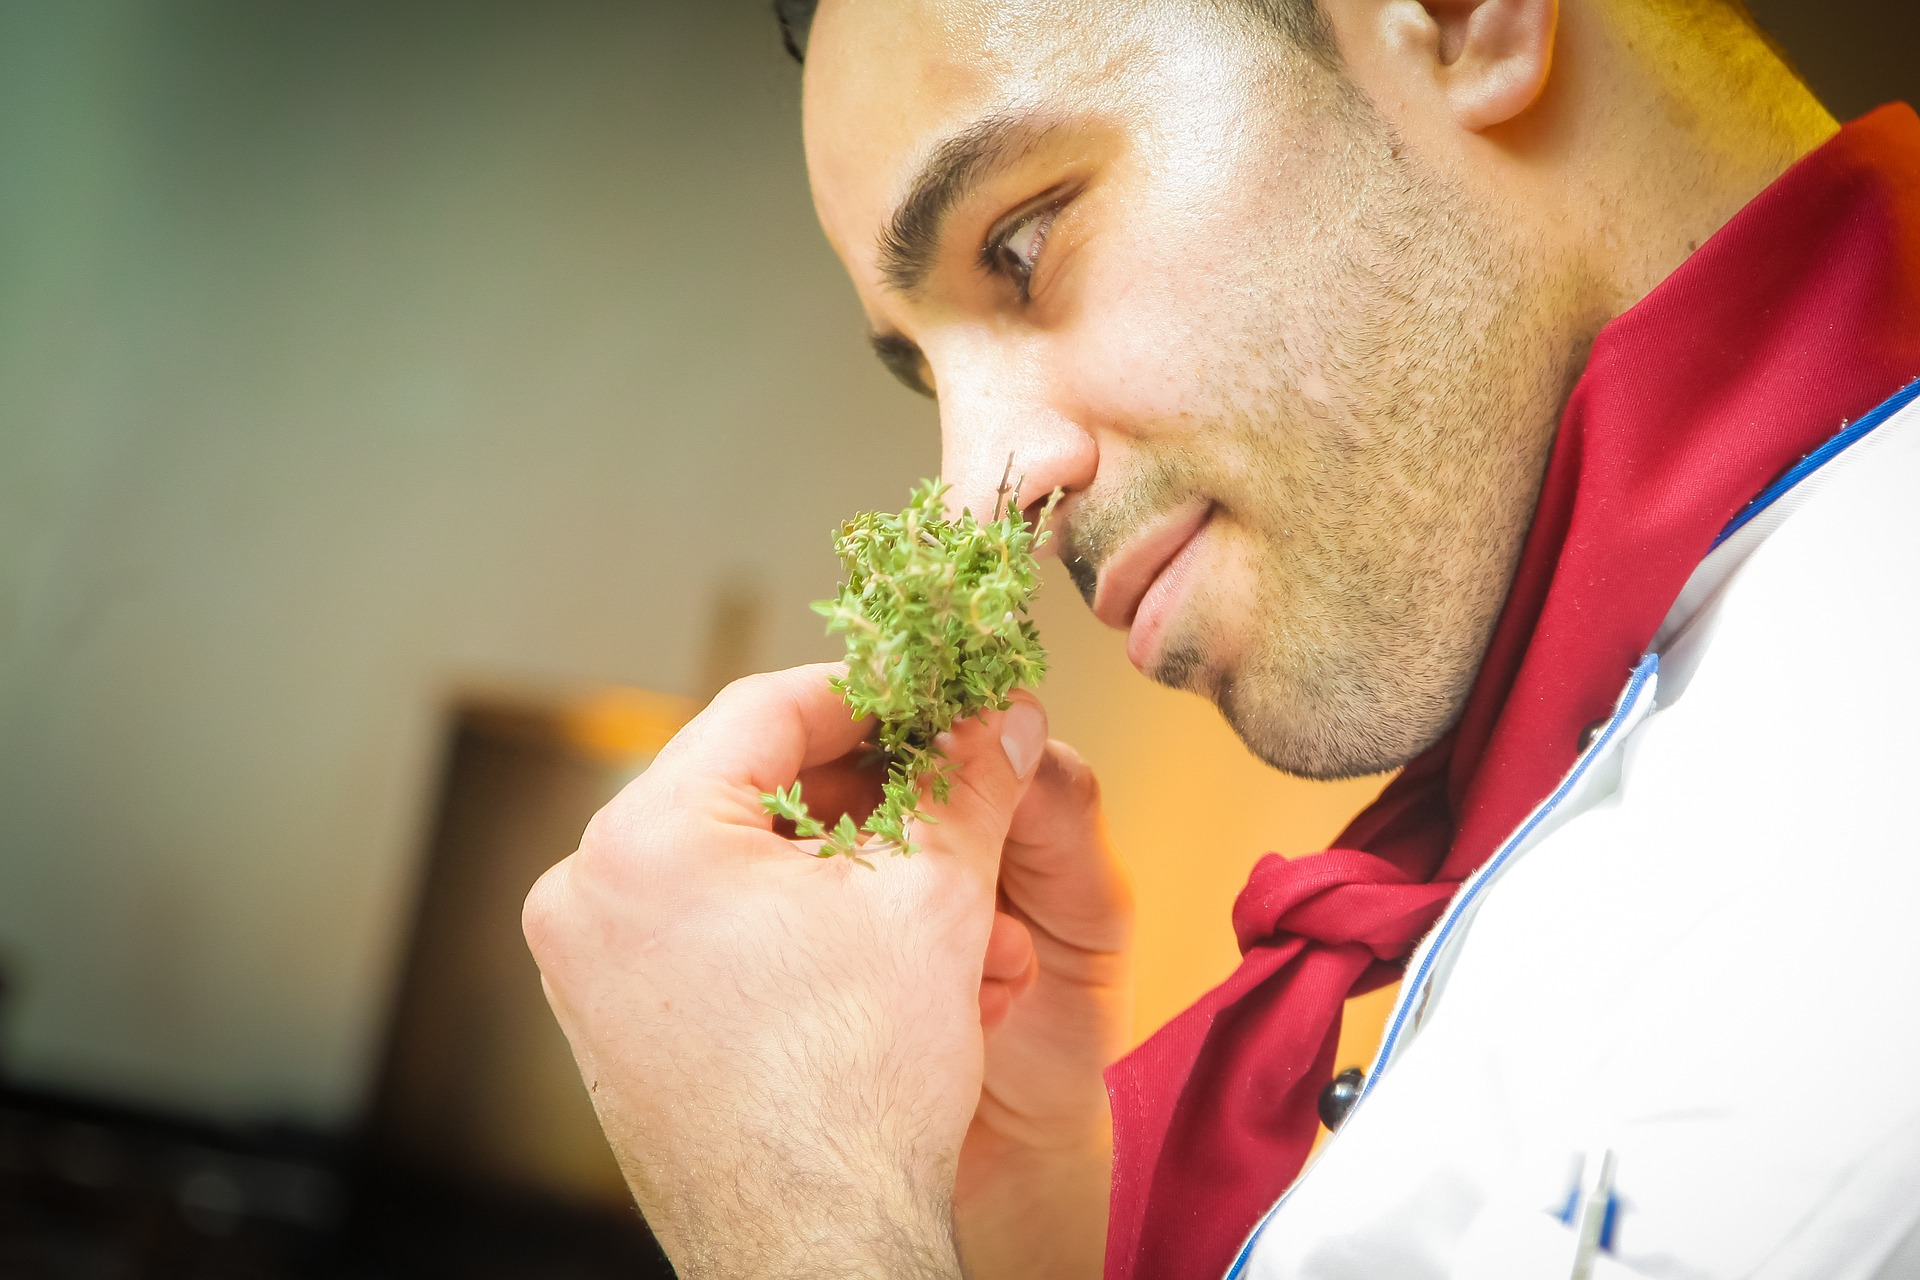 chef wearing red scarf sniffing a small bunch of green herbs